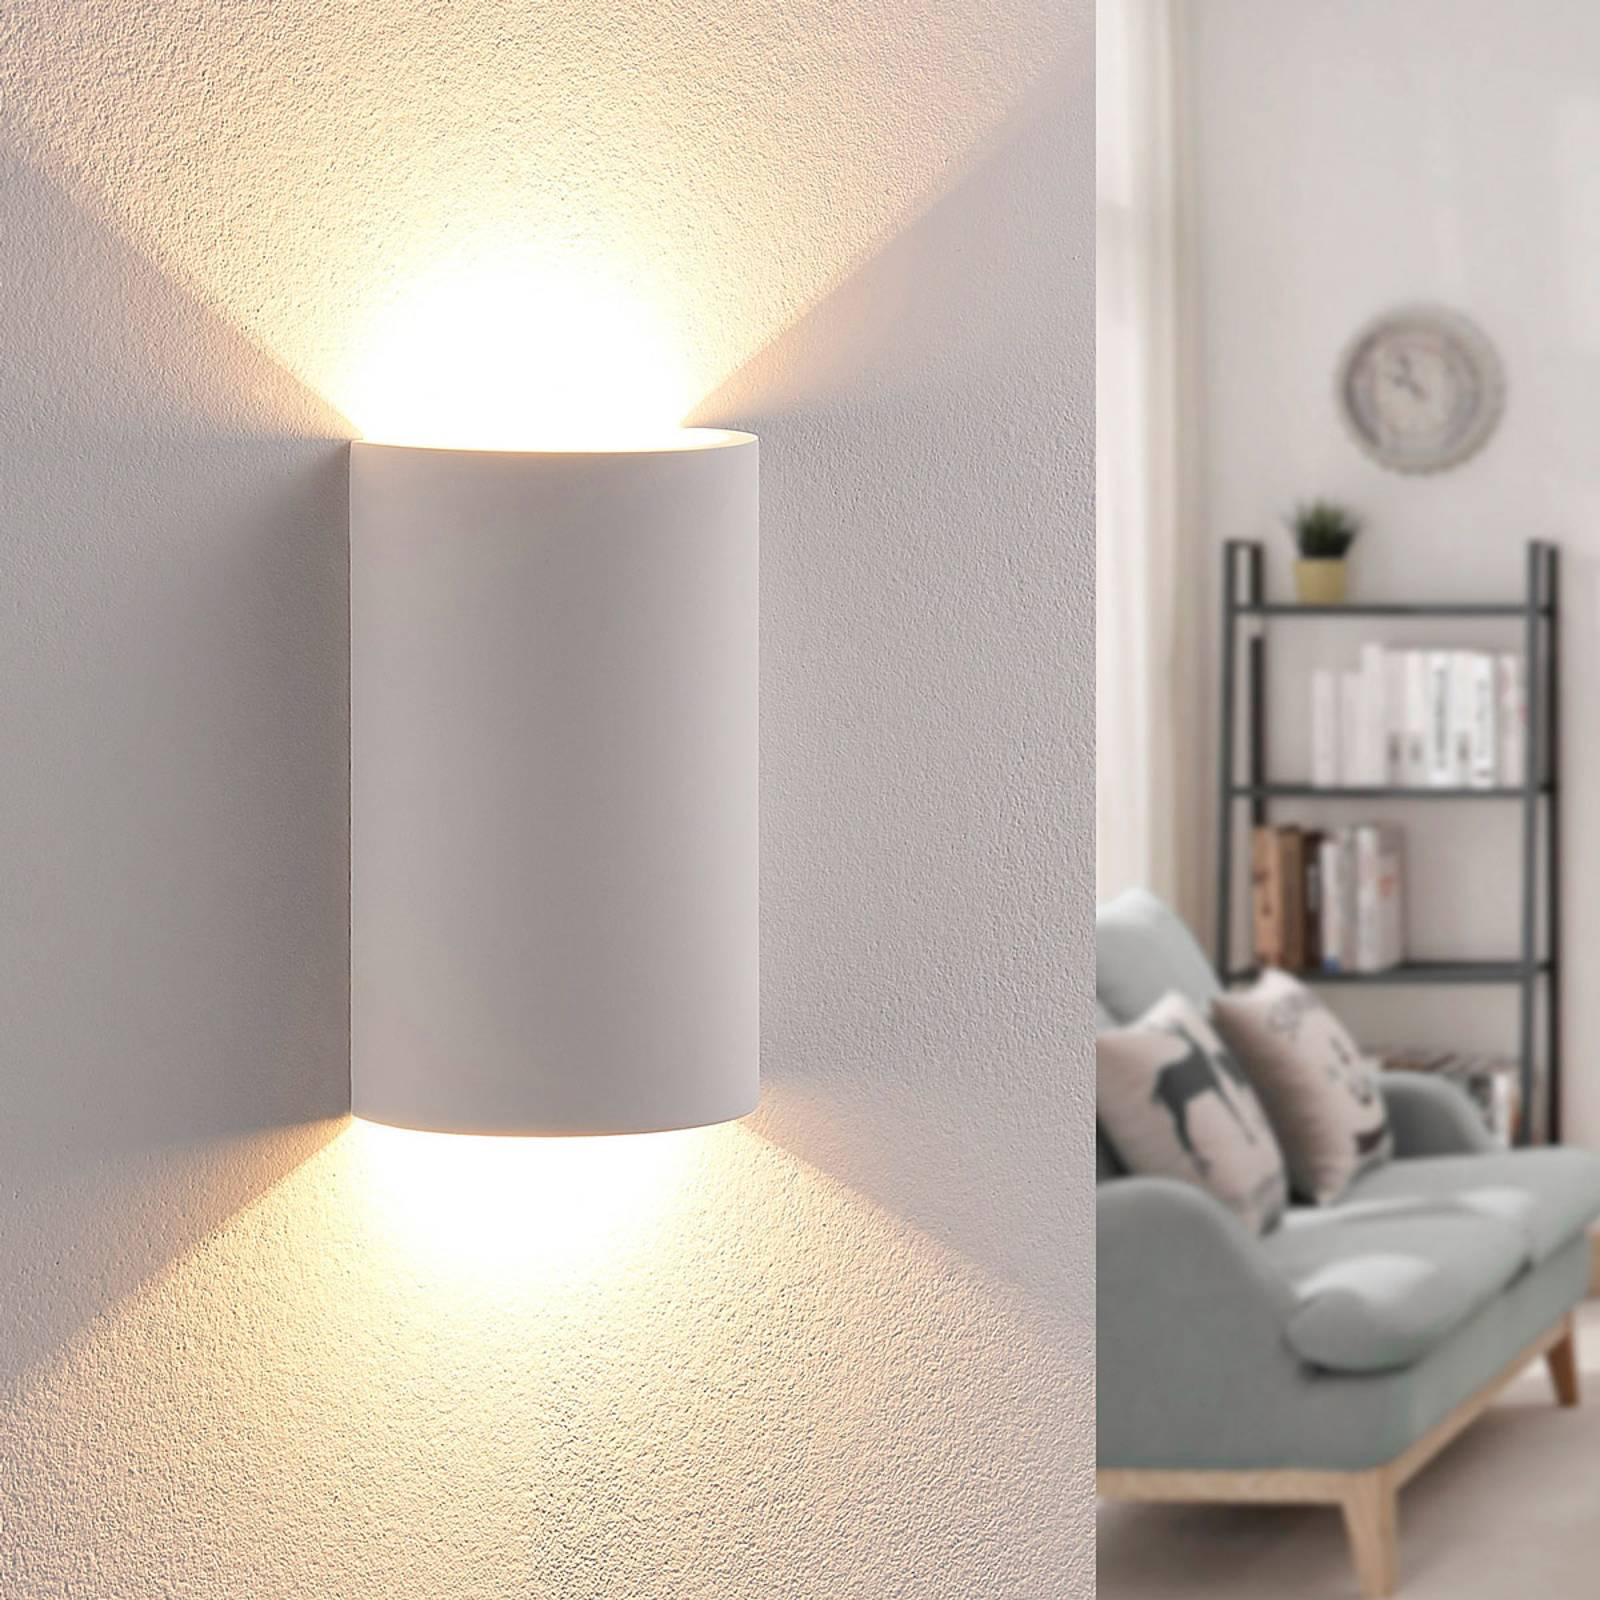 Effective LED plaster wall light Jenke from Lindby